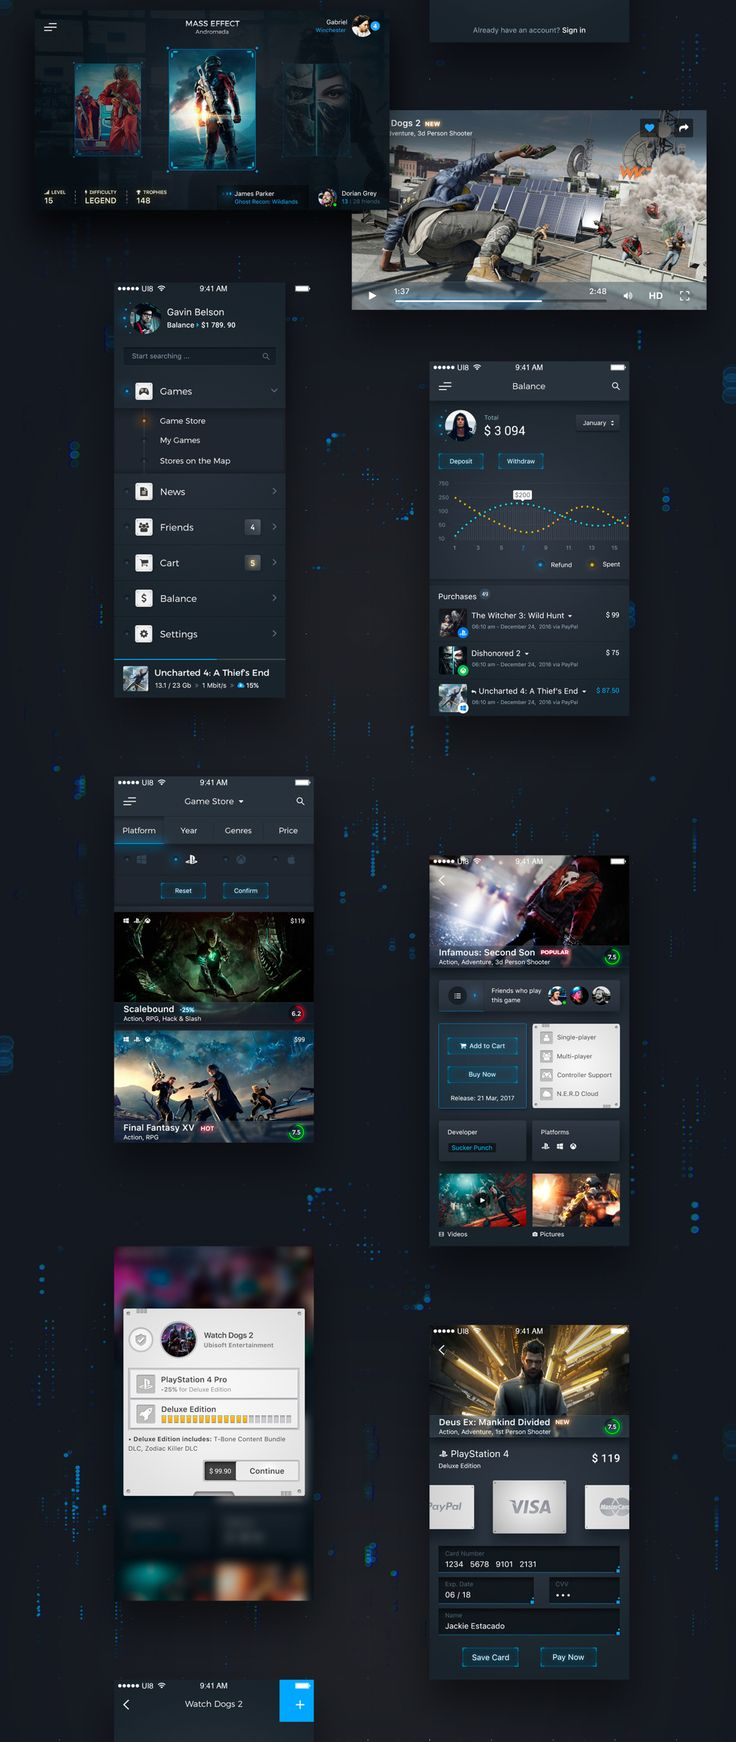 Unique, futuristic and modern new UI Kit designed for iOS. NERD includes 16 iPhone 6 screen templates designed in Photoshop. Absolutely 100% vector shapes for retina allow for easy resizing.